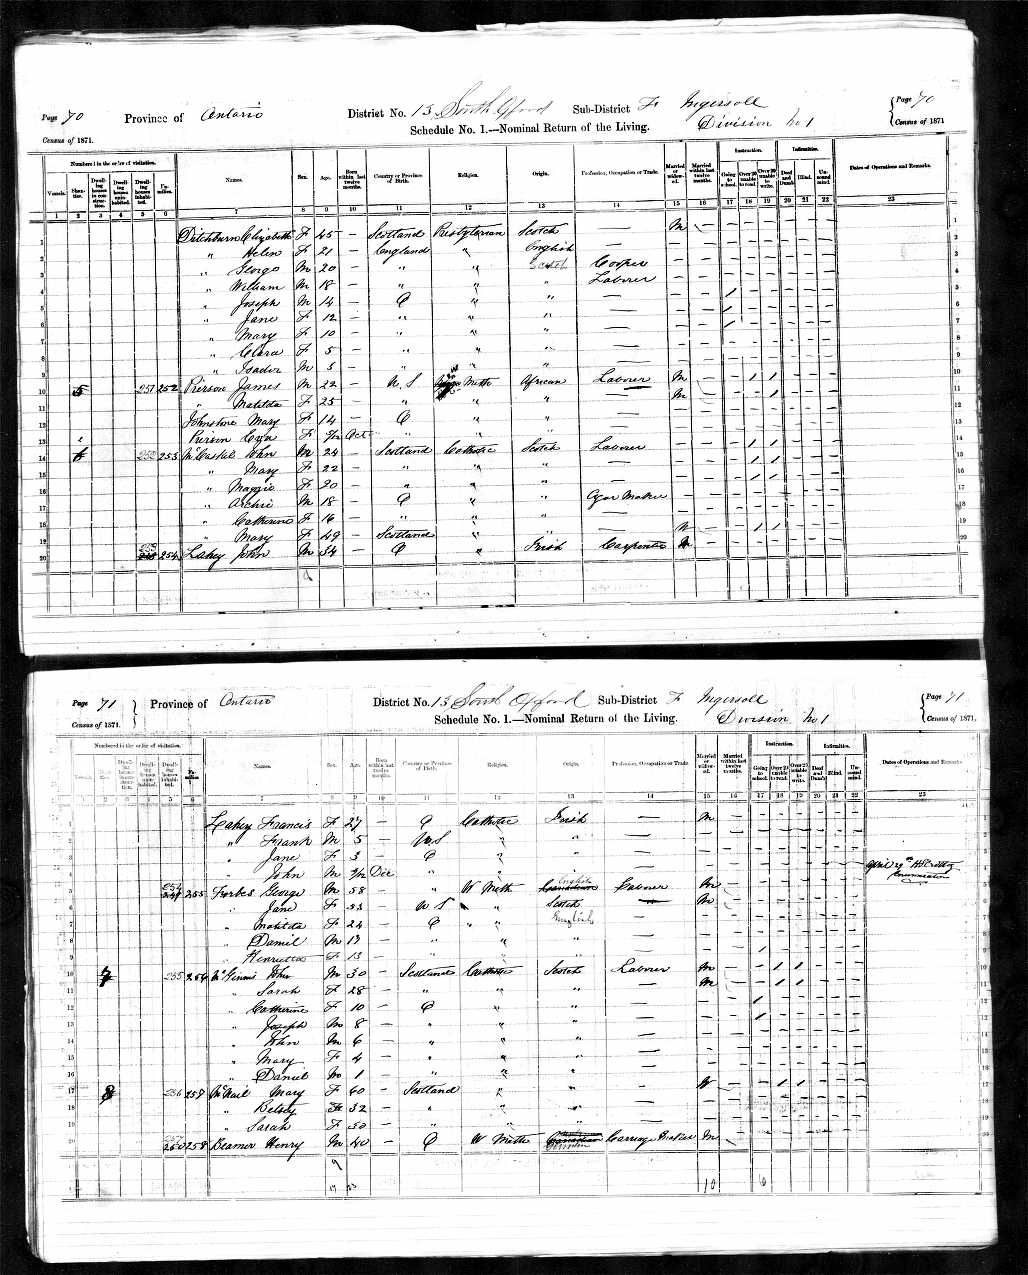 how to find adoption records on ancestry